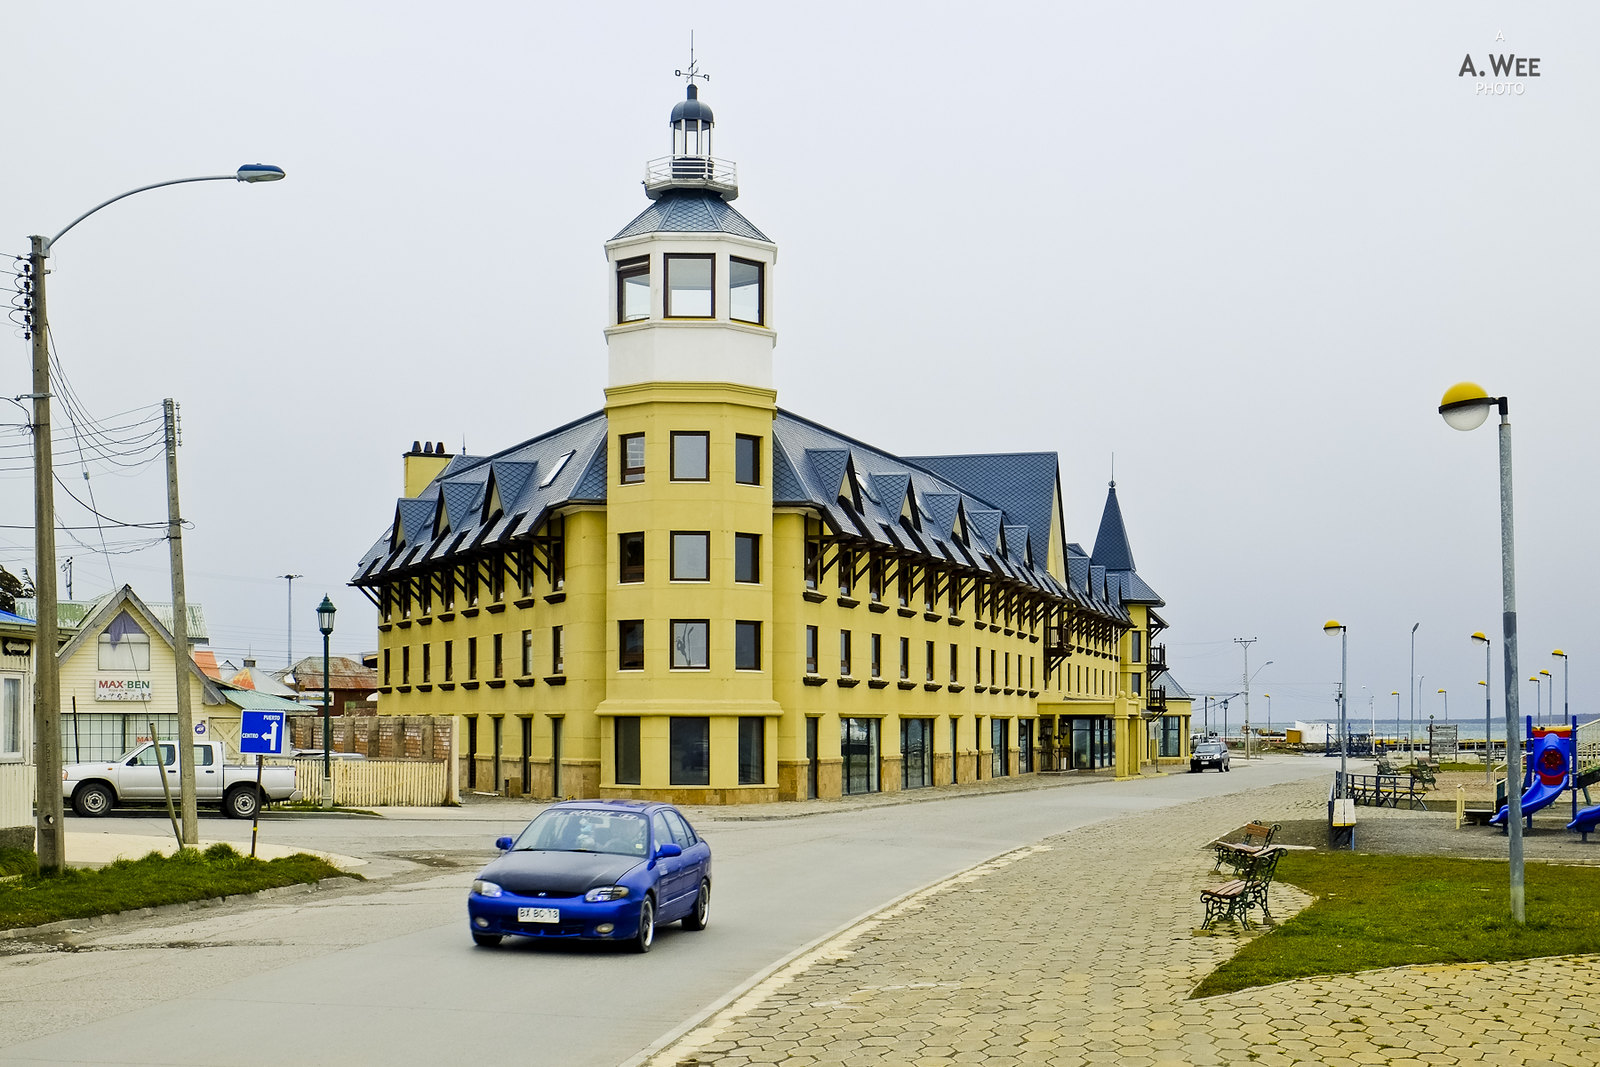 Hotel Costaustralis